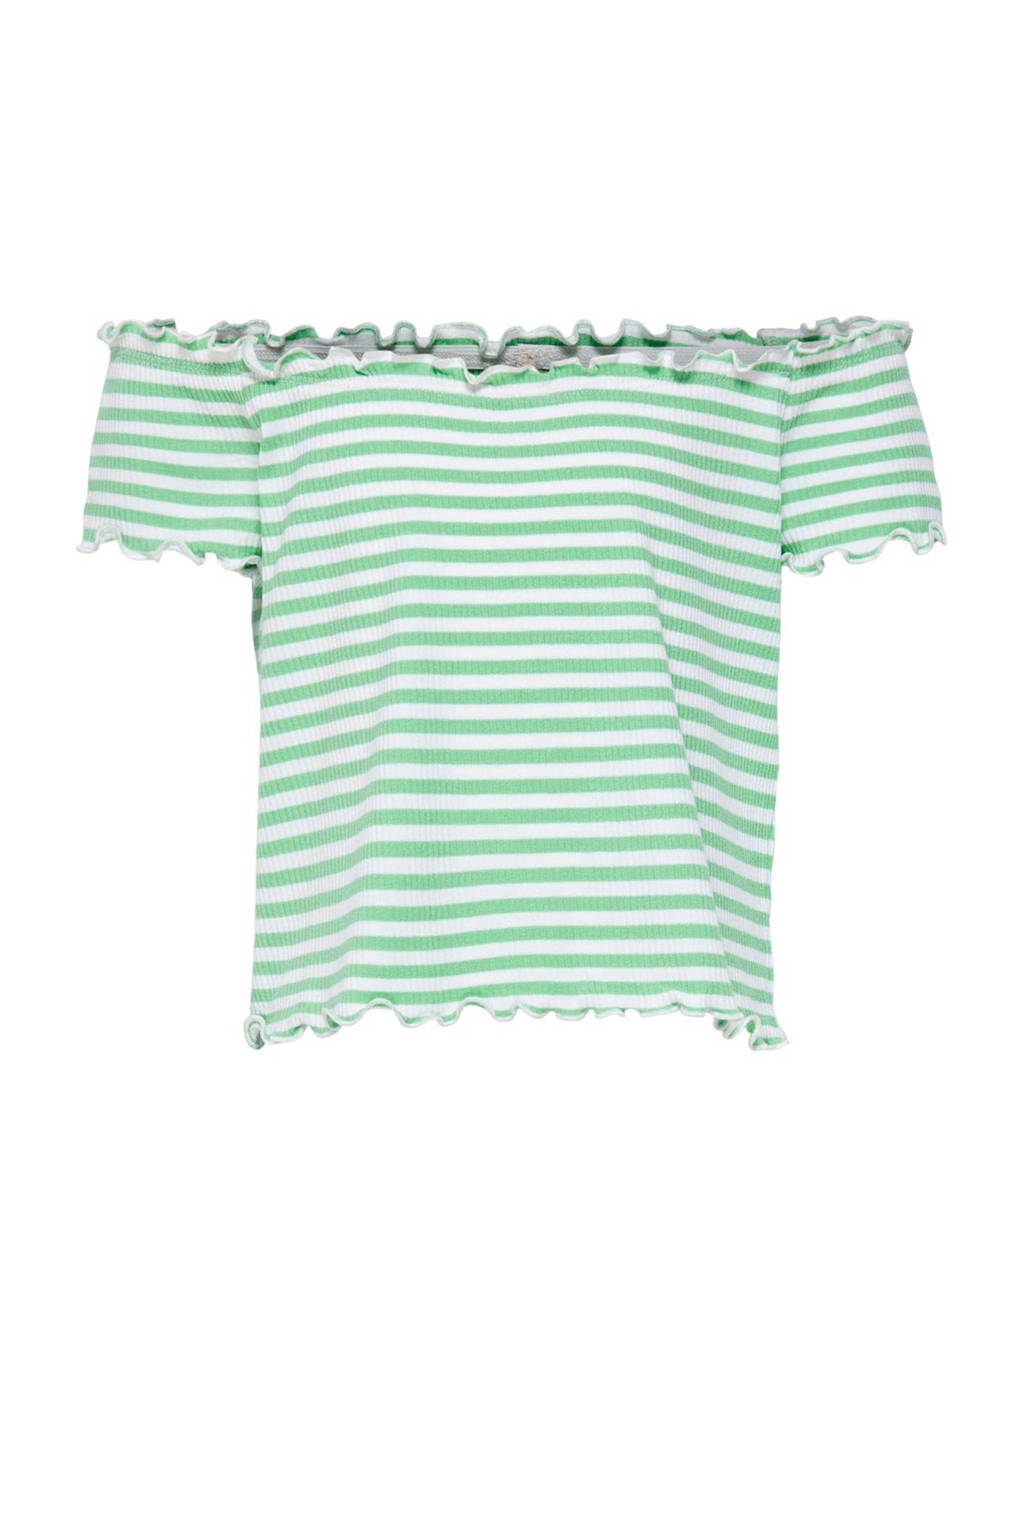 KIDS ONLY gestreepte off shoulder top Naroma groen/wit, Groen/wit